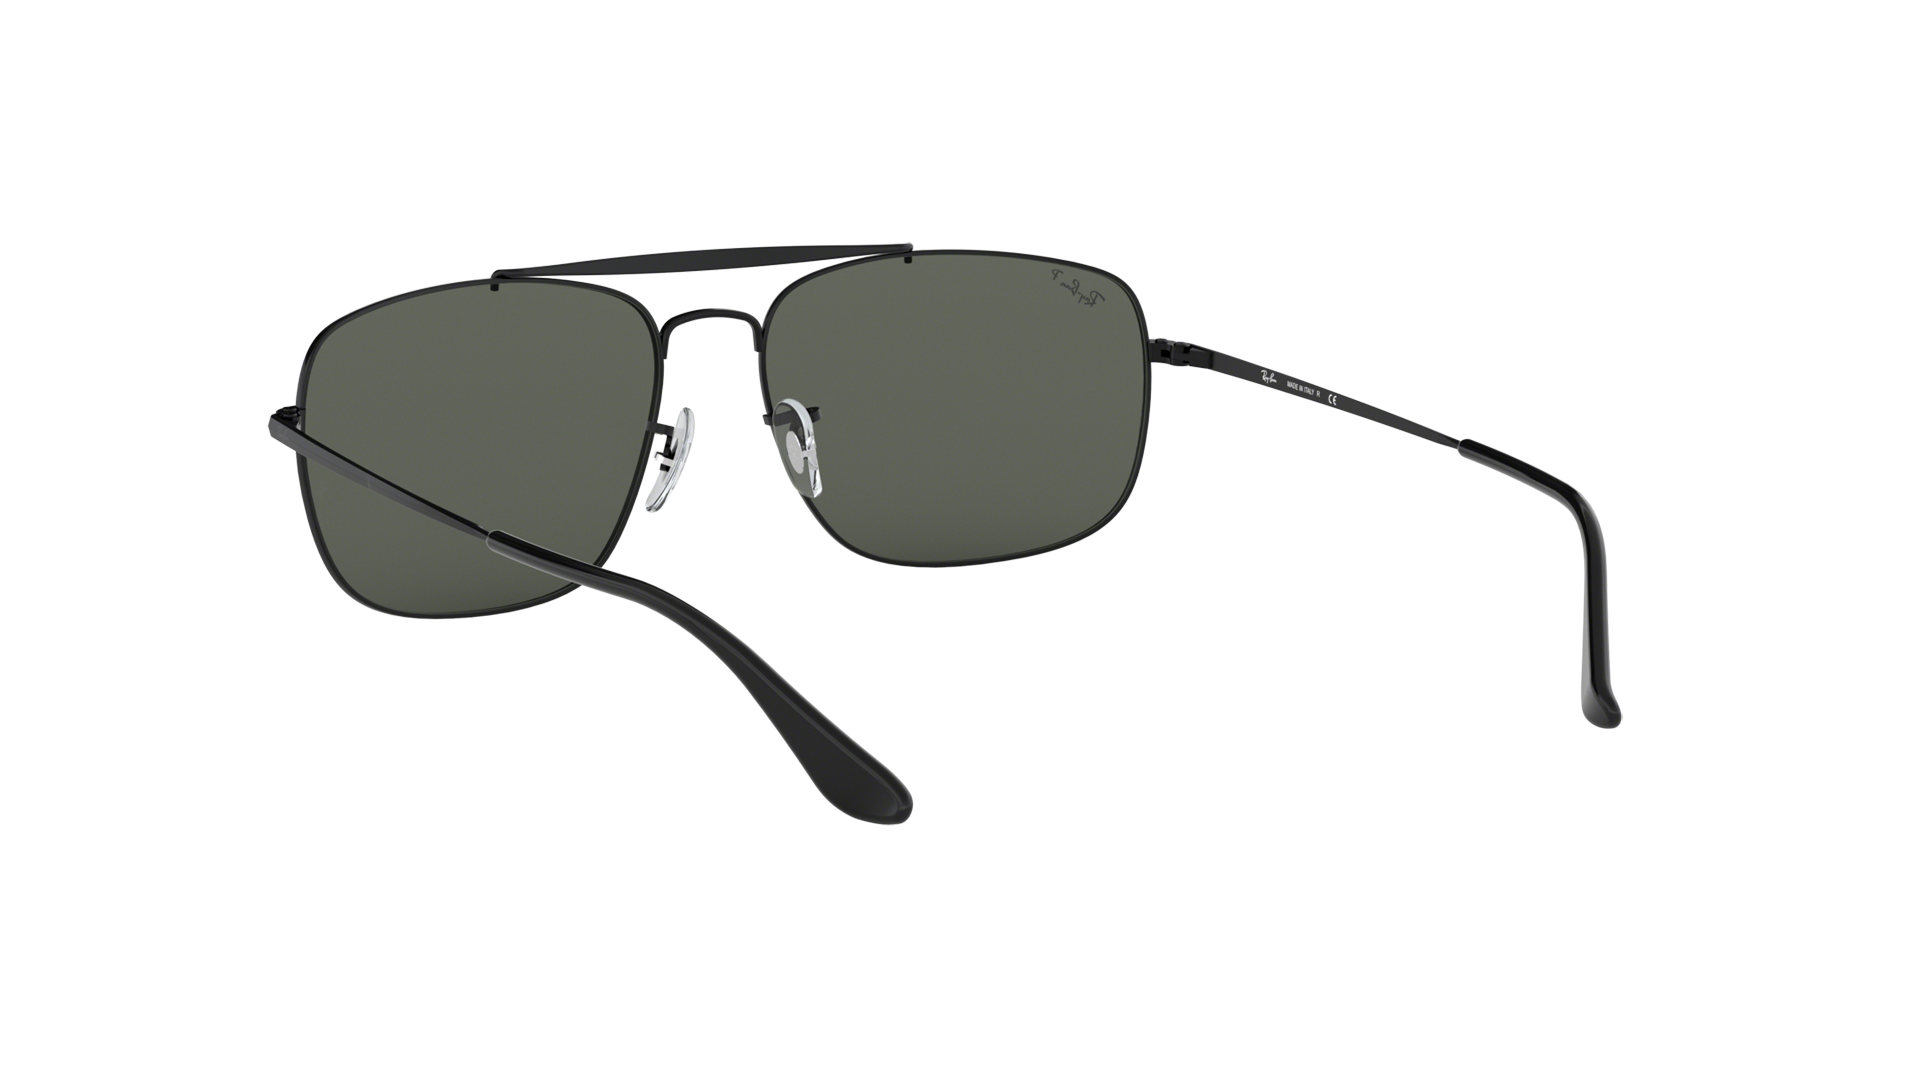 59c2d4376f Sunglasses Ray-Ban The colonel Black Matte RB3560 002 58 61-17 Large  Polarized